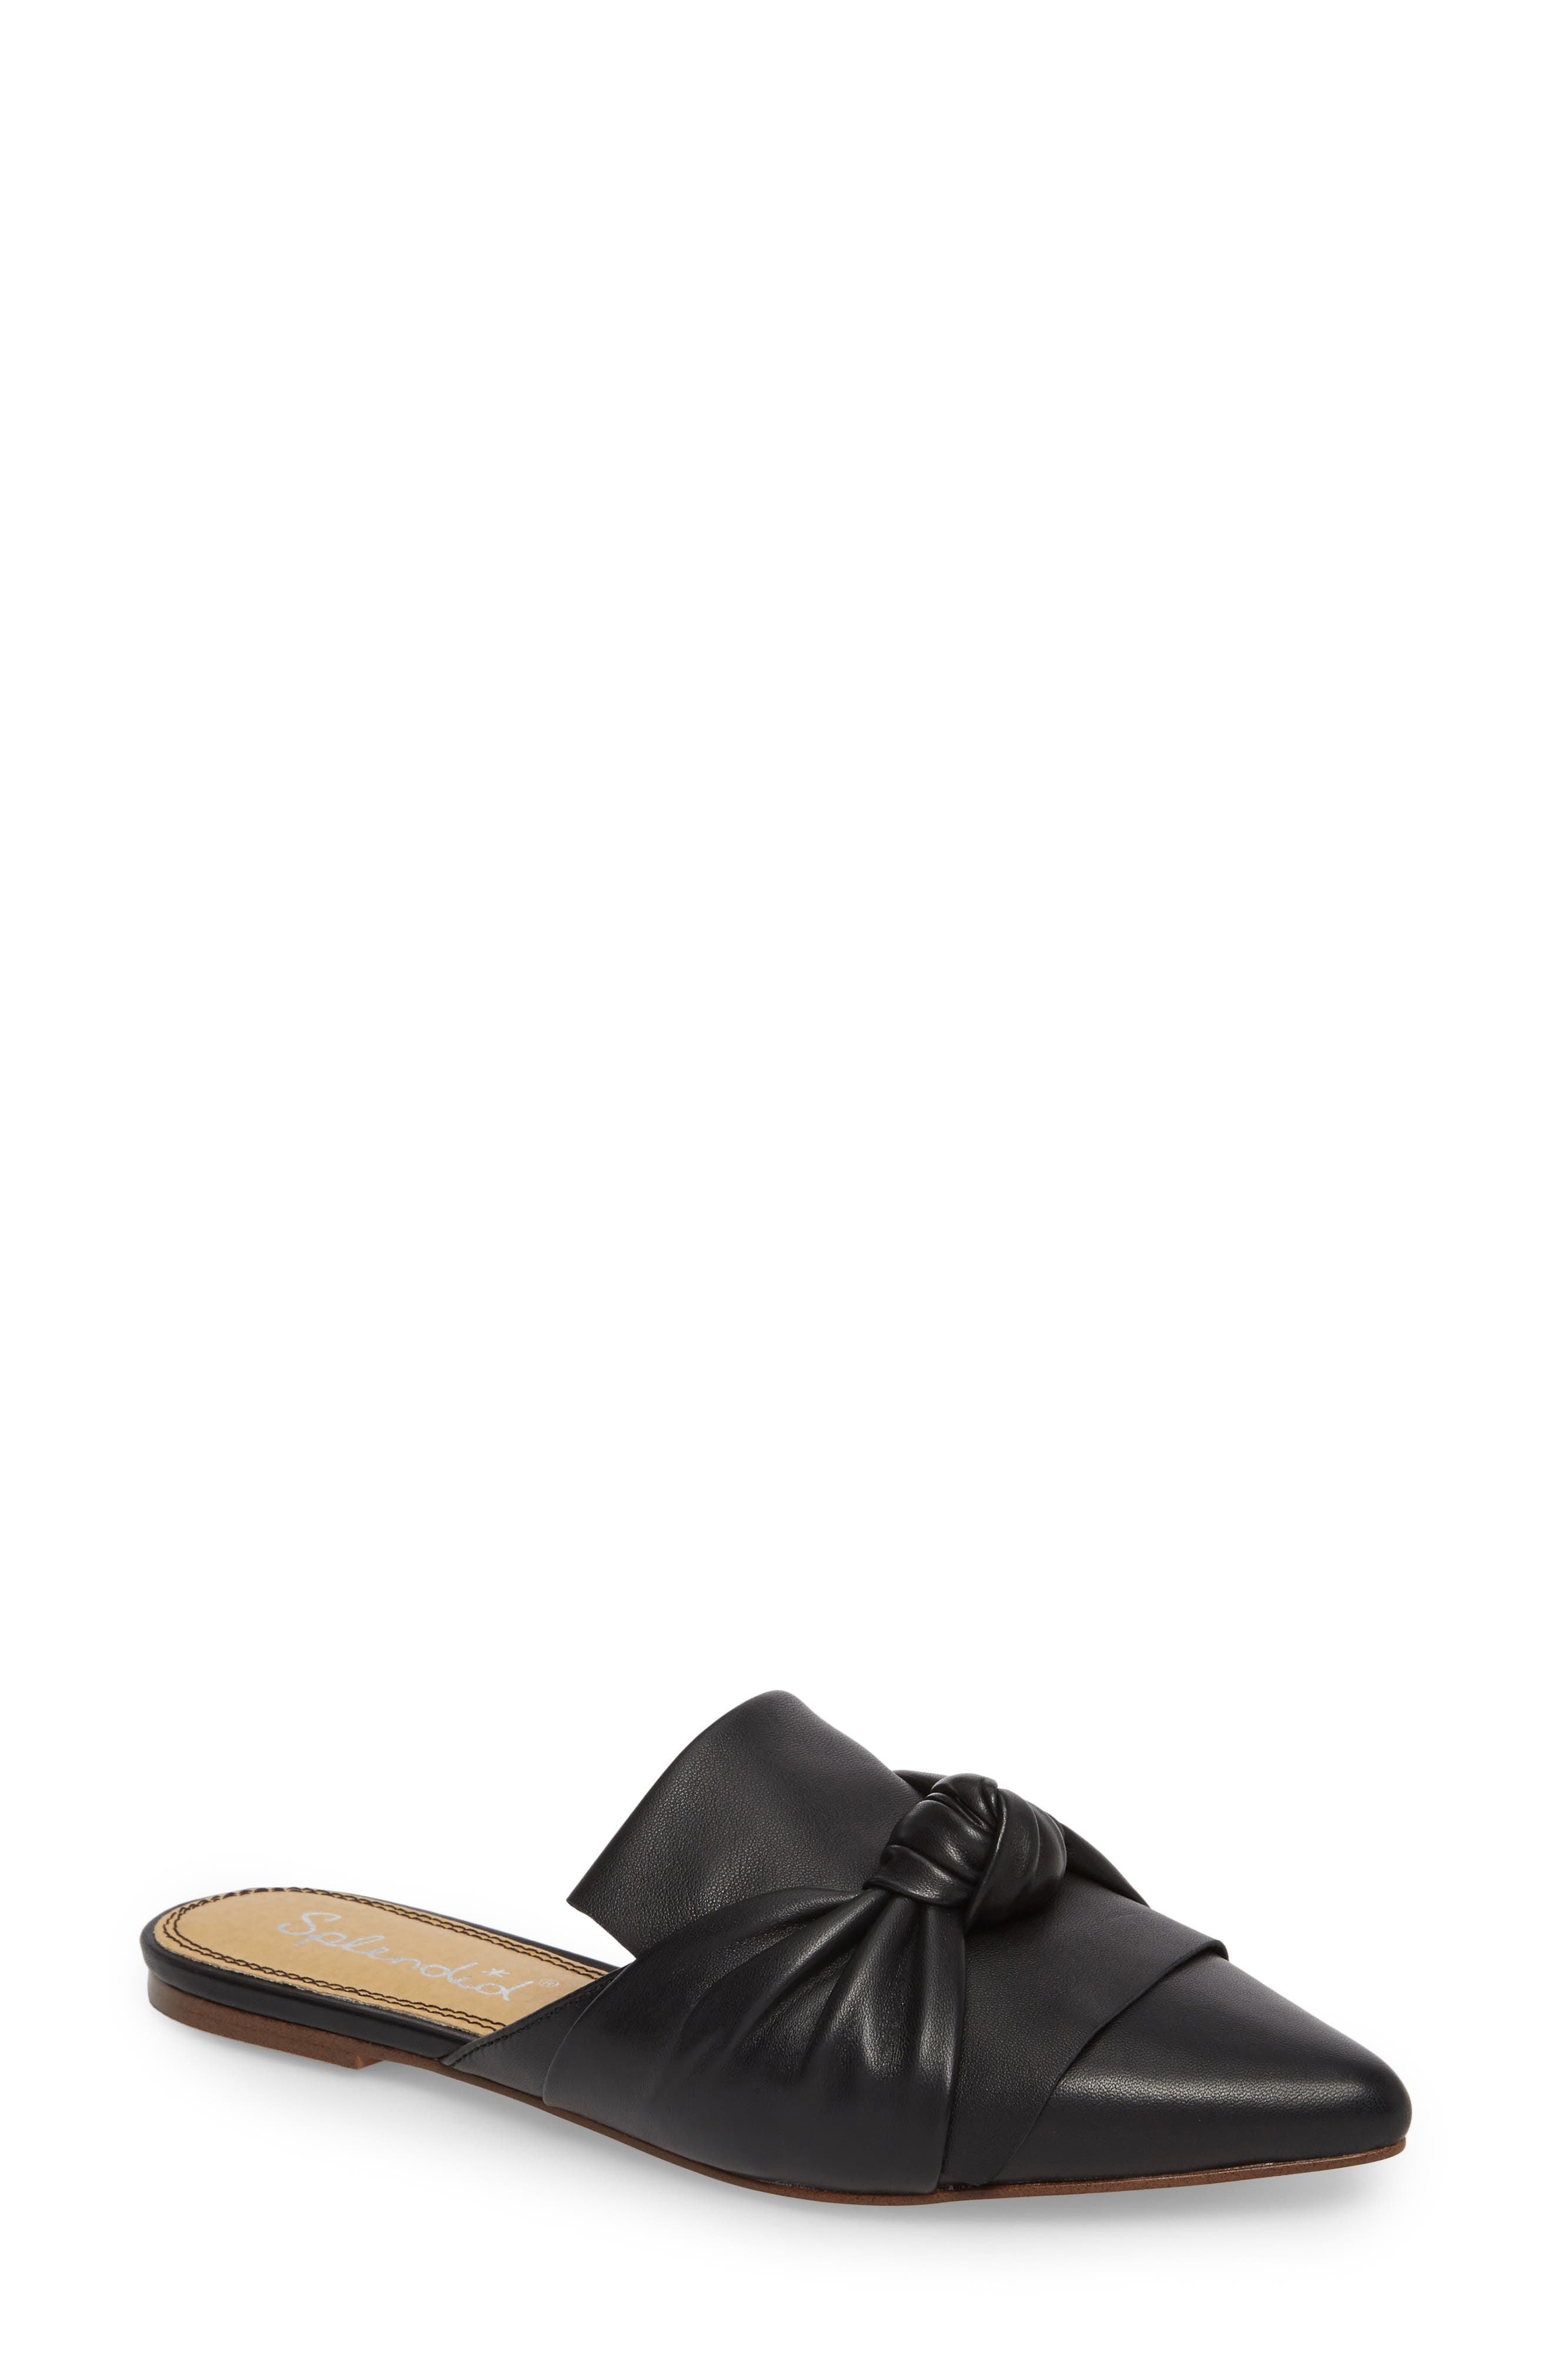 Bassett Knotted Pointy Toe Mule,                             Main thumbnail 1, color,